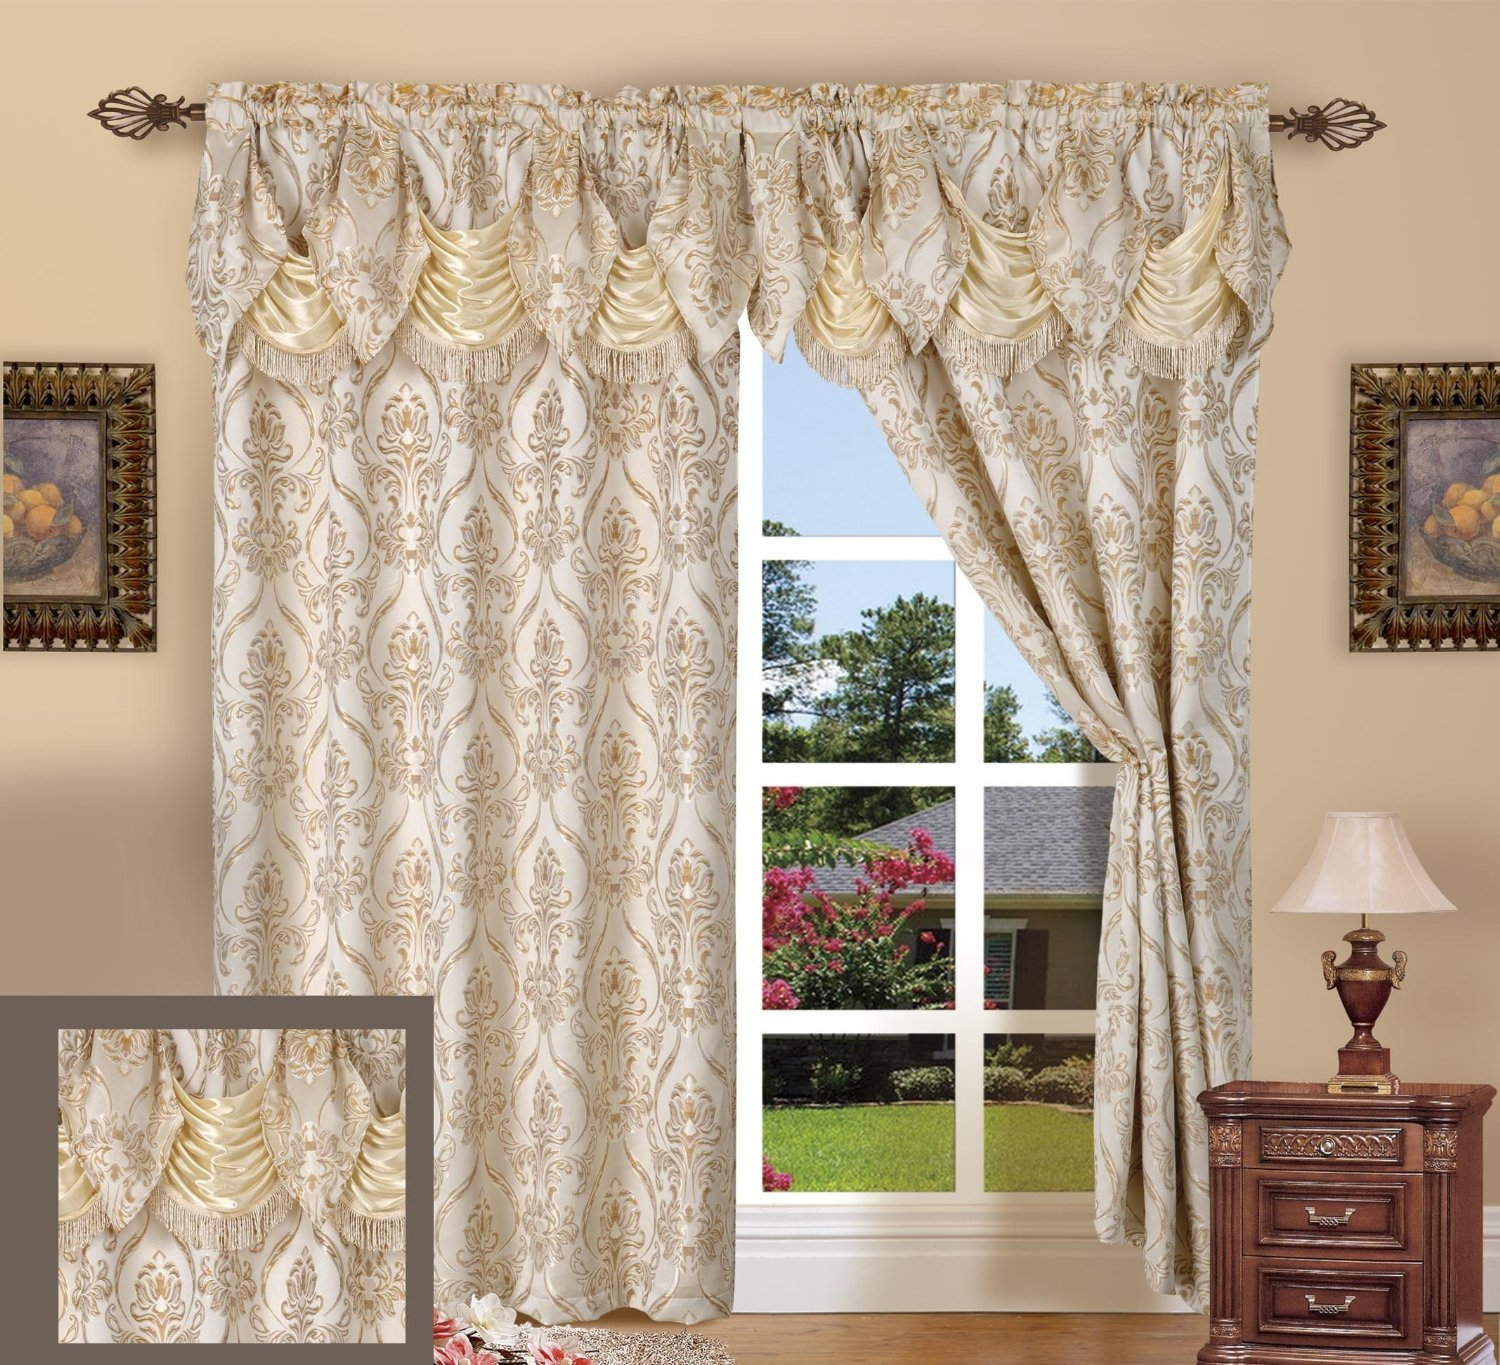 Elegant Comfort Penelopie Jacquard Look Curtain Panel Set, 54 by 84-Inch, Beige, Set of 2 [並行輸入品] B01N5MIZ8W